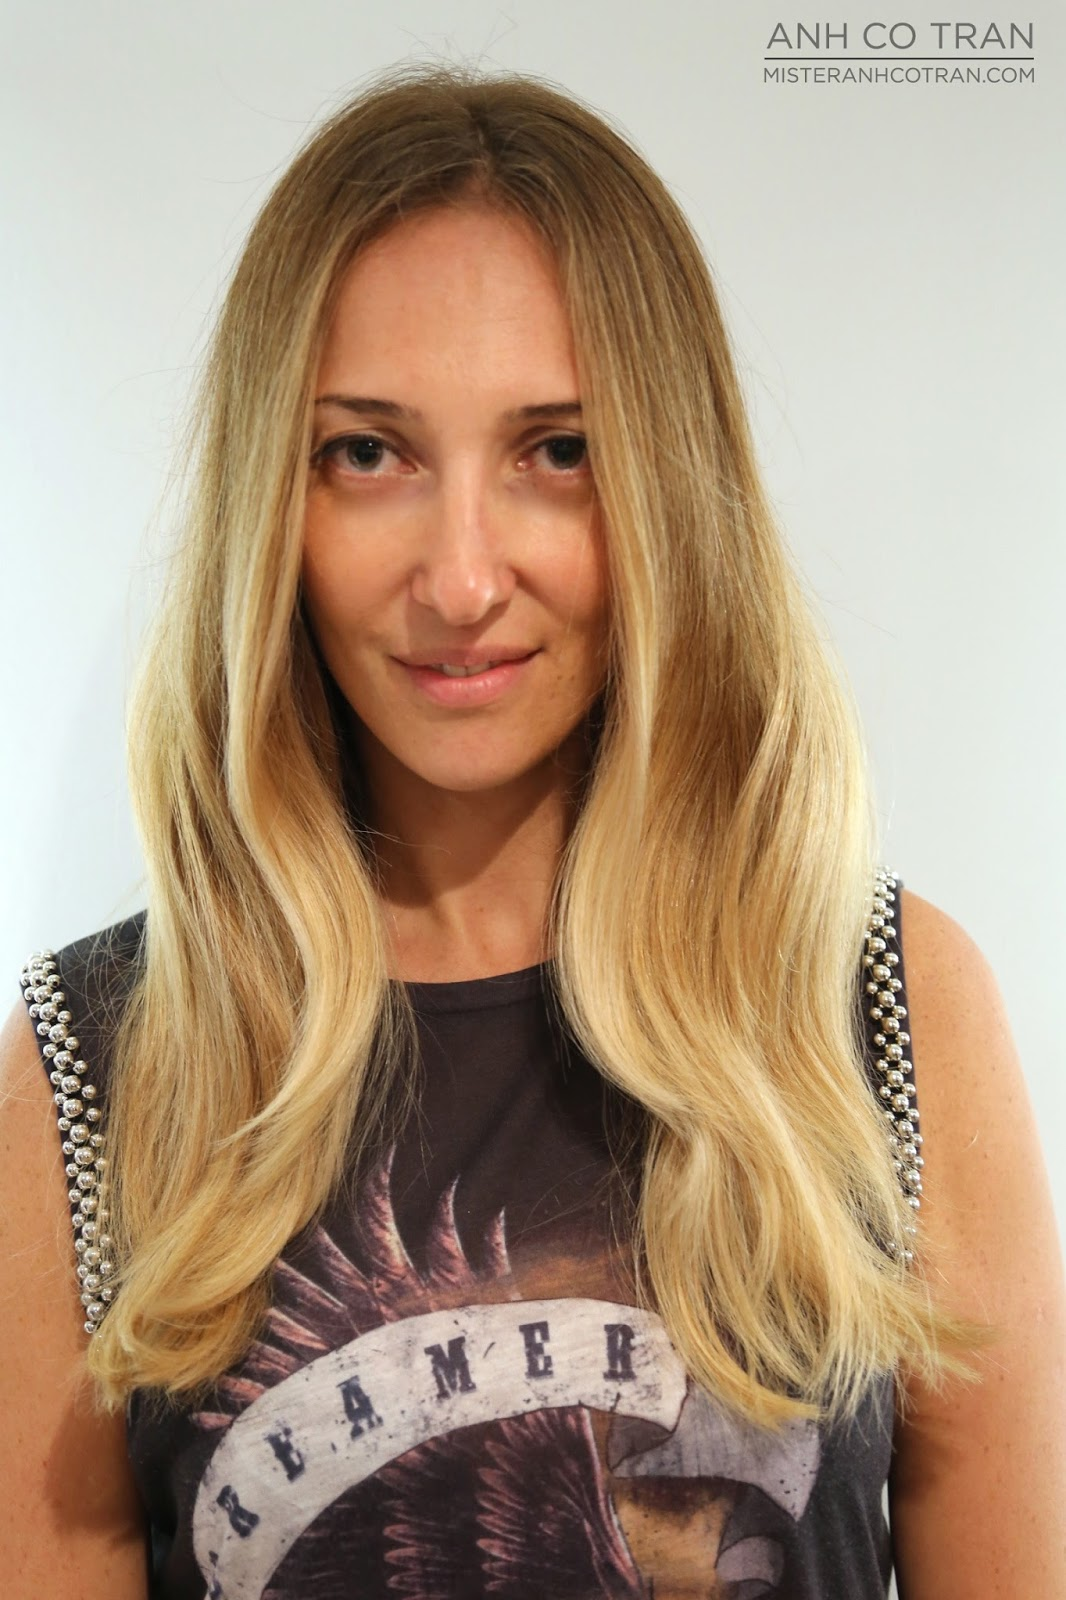 MIAMI: A DAY AT THE SALON: CLASSIC FACE FRAMING LAYERS - ANH CO TRAN ...